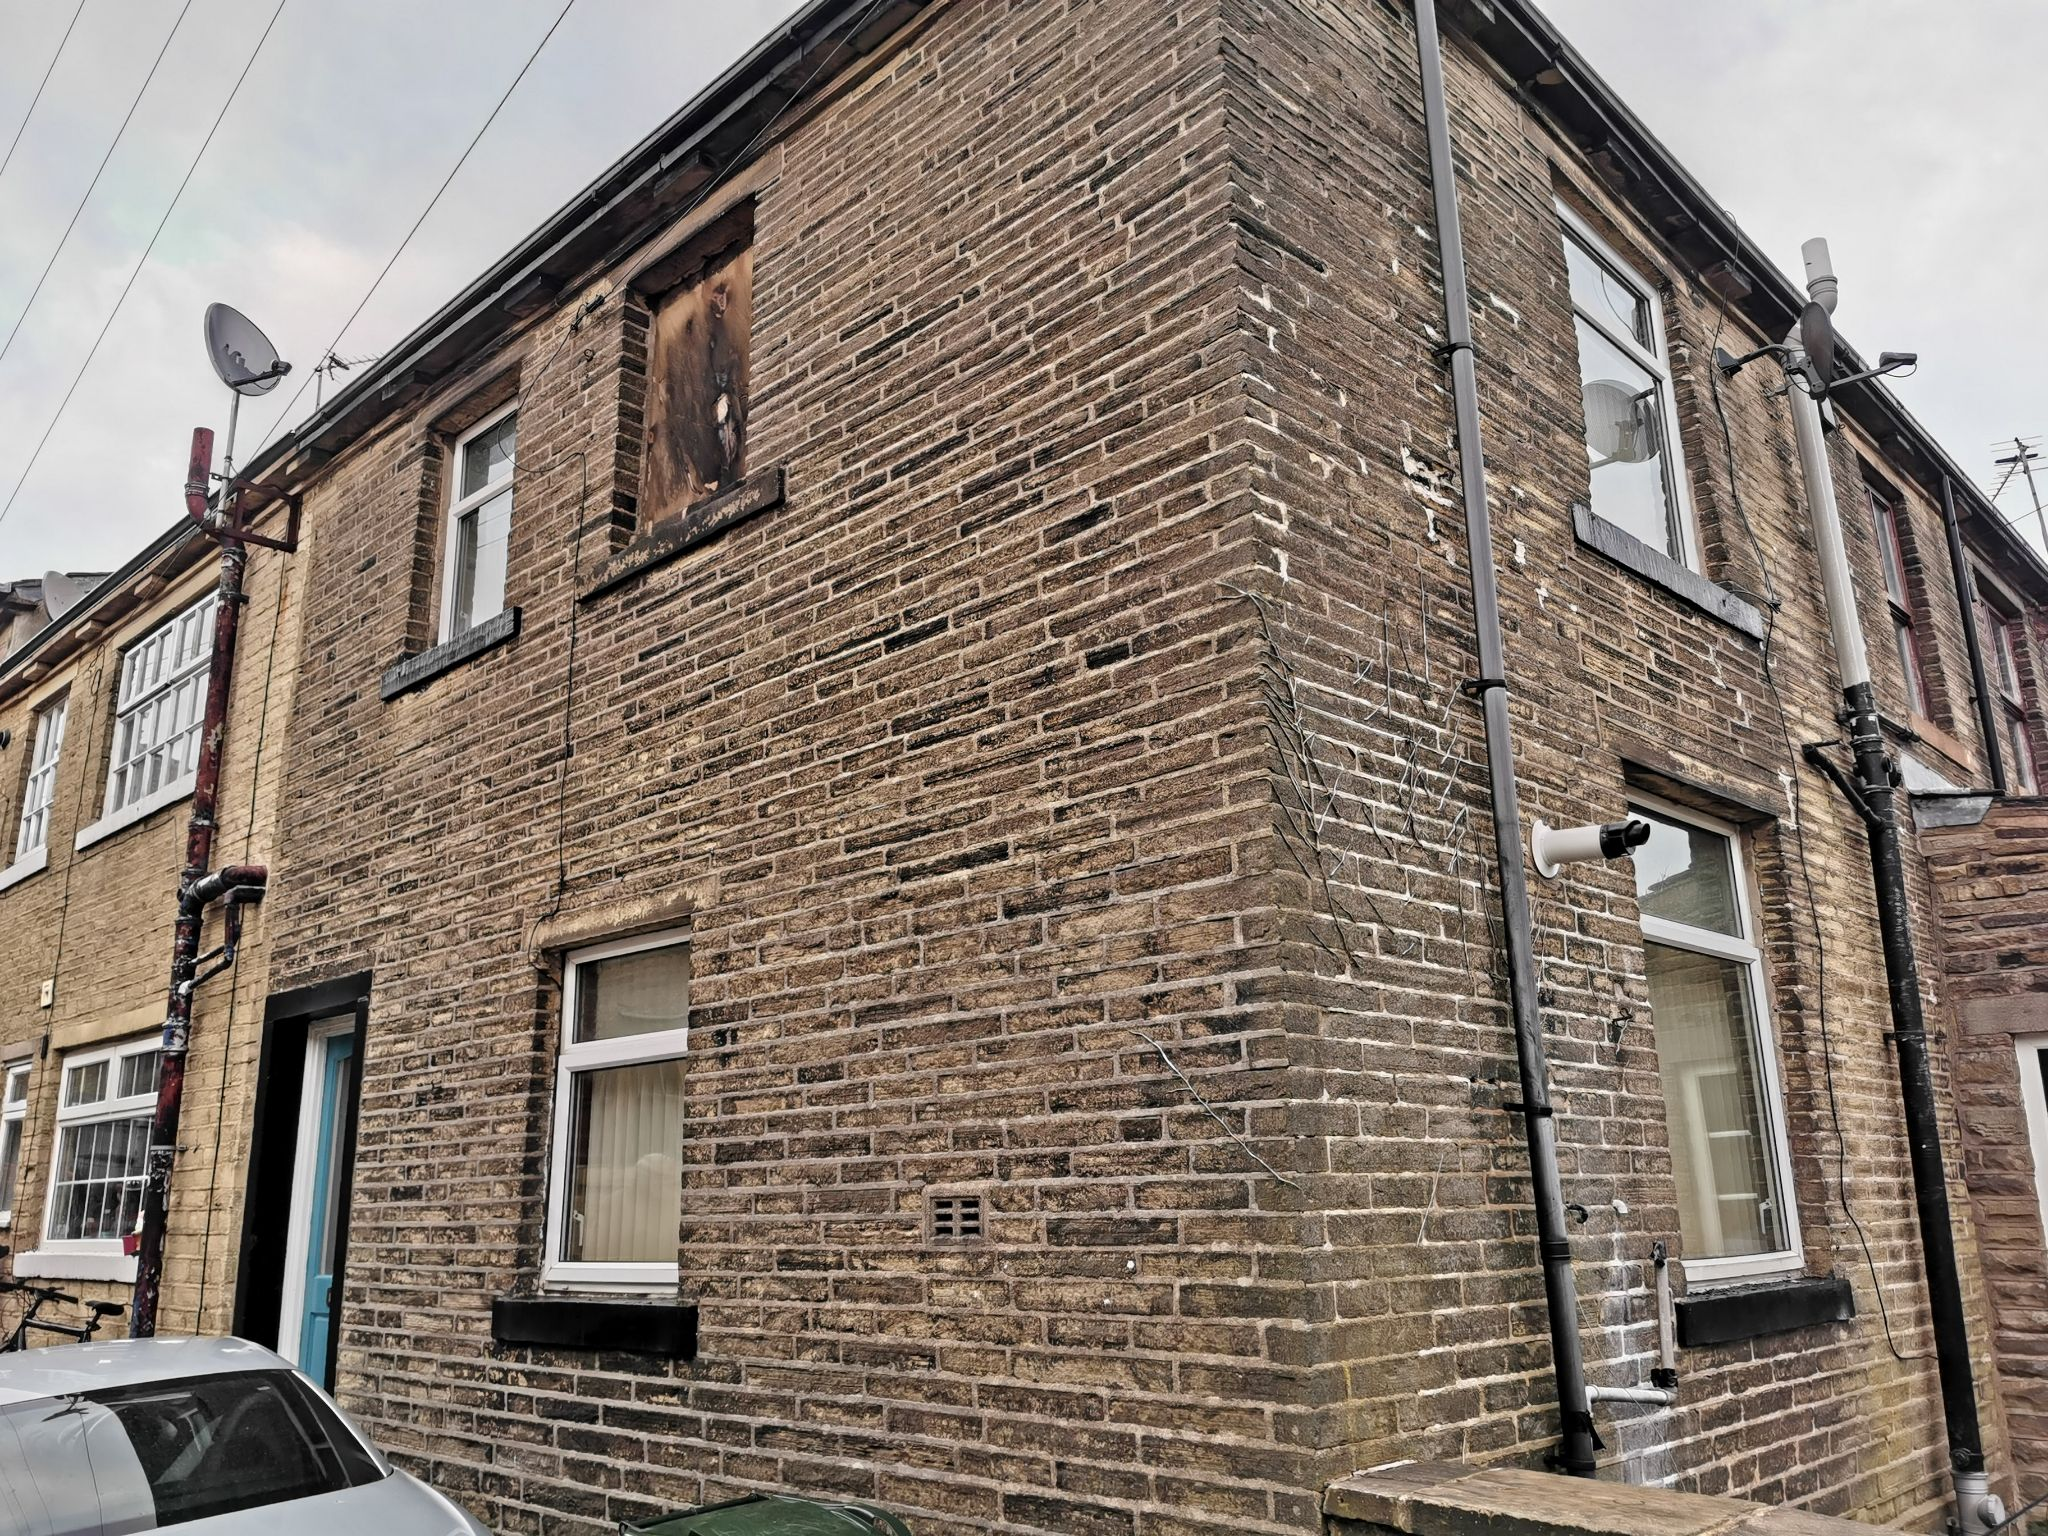 2 bedroom mid terraced house SSTC in Bradford - Photograph 12.